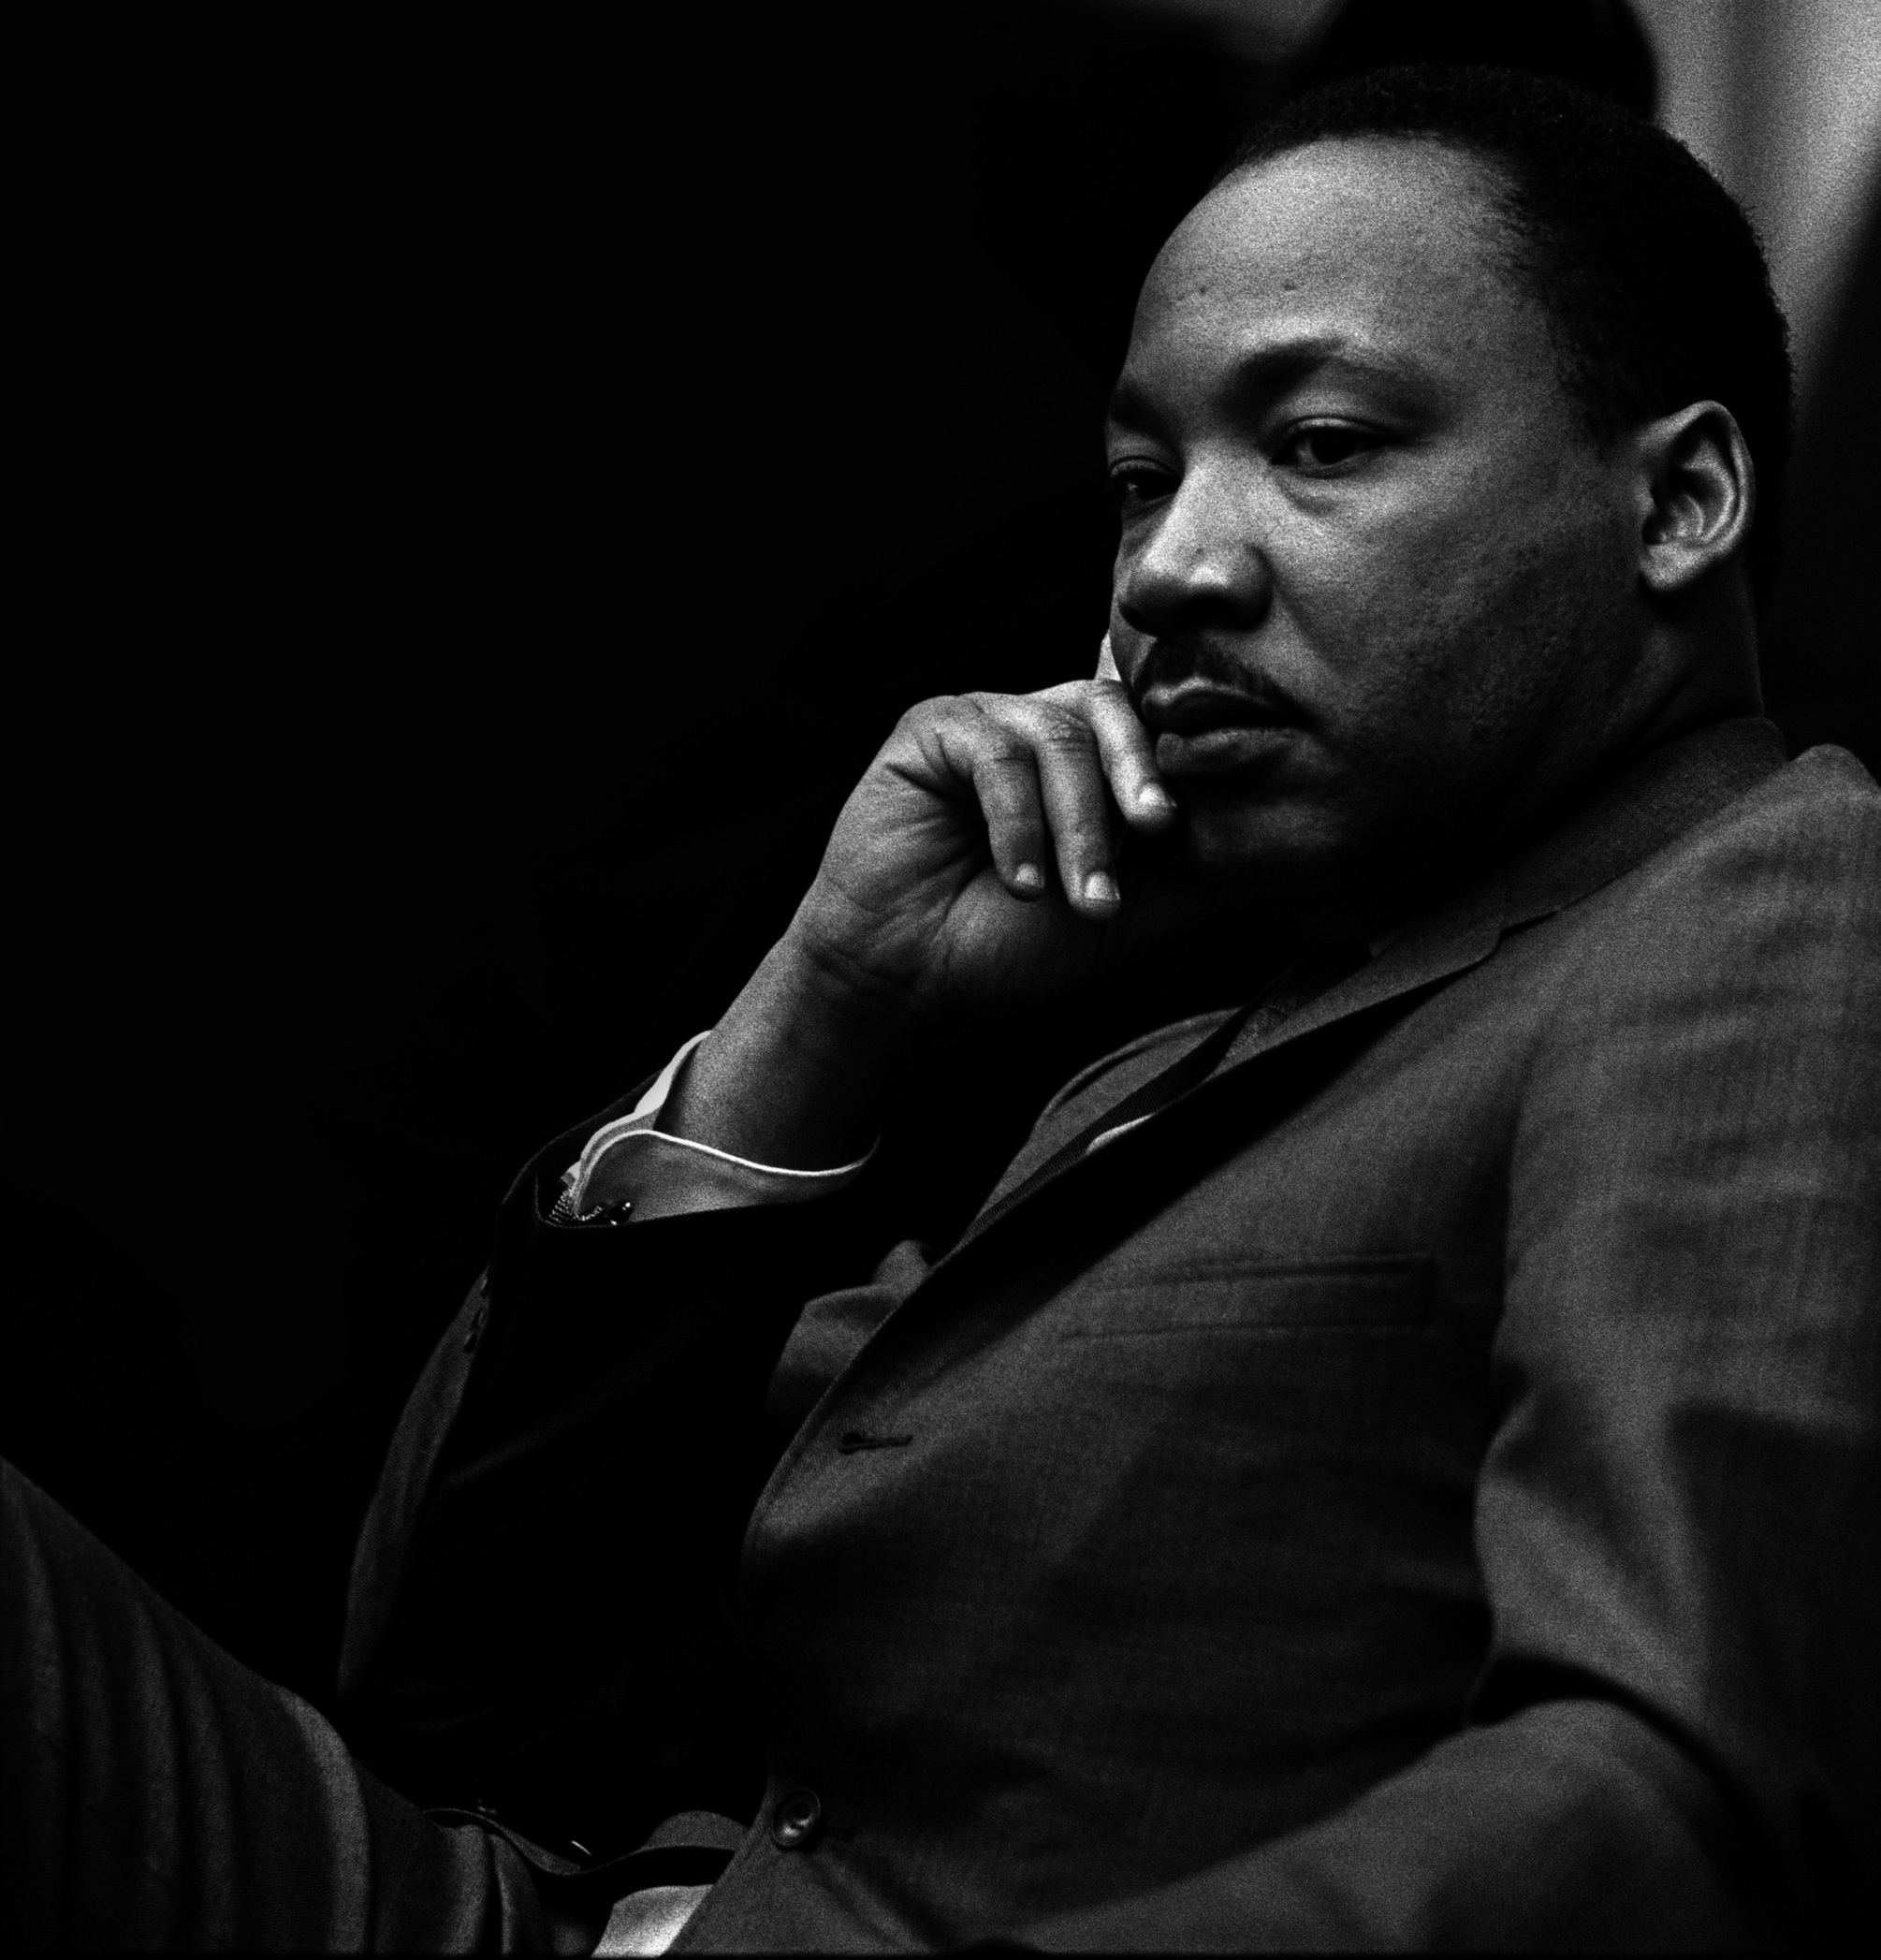 martin luther king - photo #7